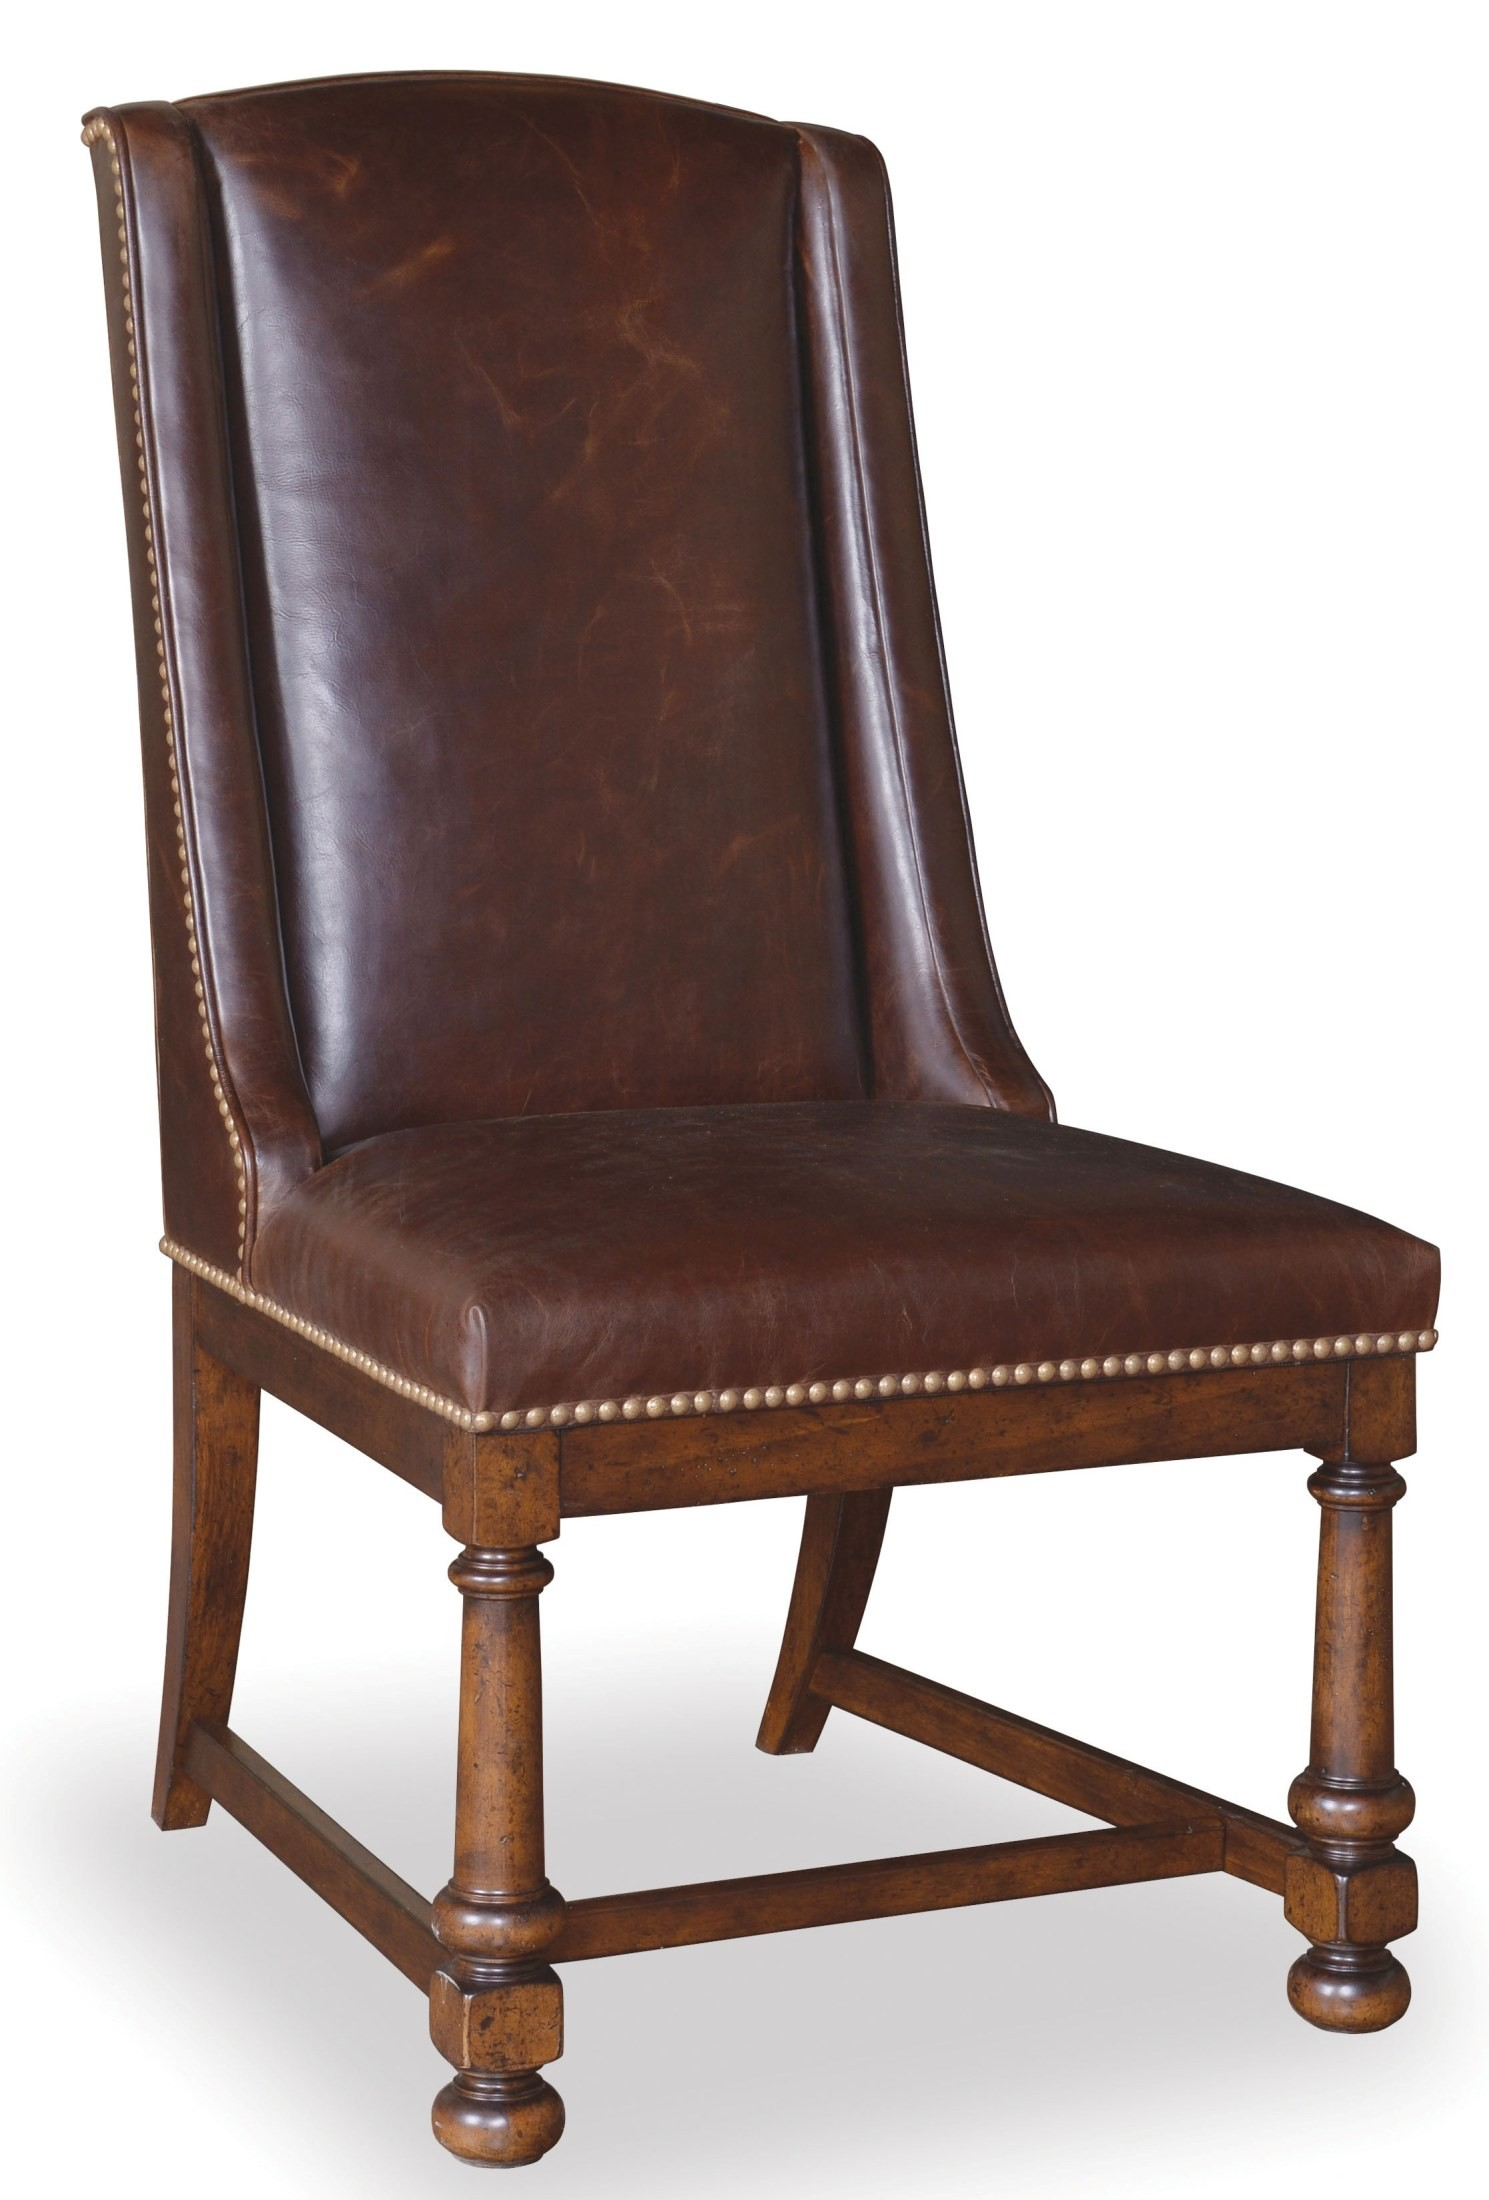 barrel dining chairs set of 2 chronicles narnia the silver chair whiskey oak leather side from art